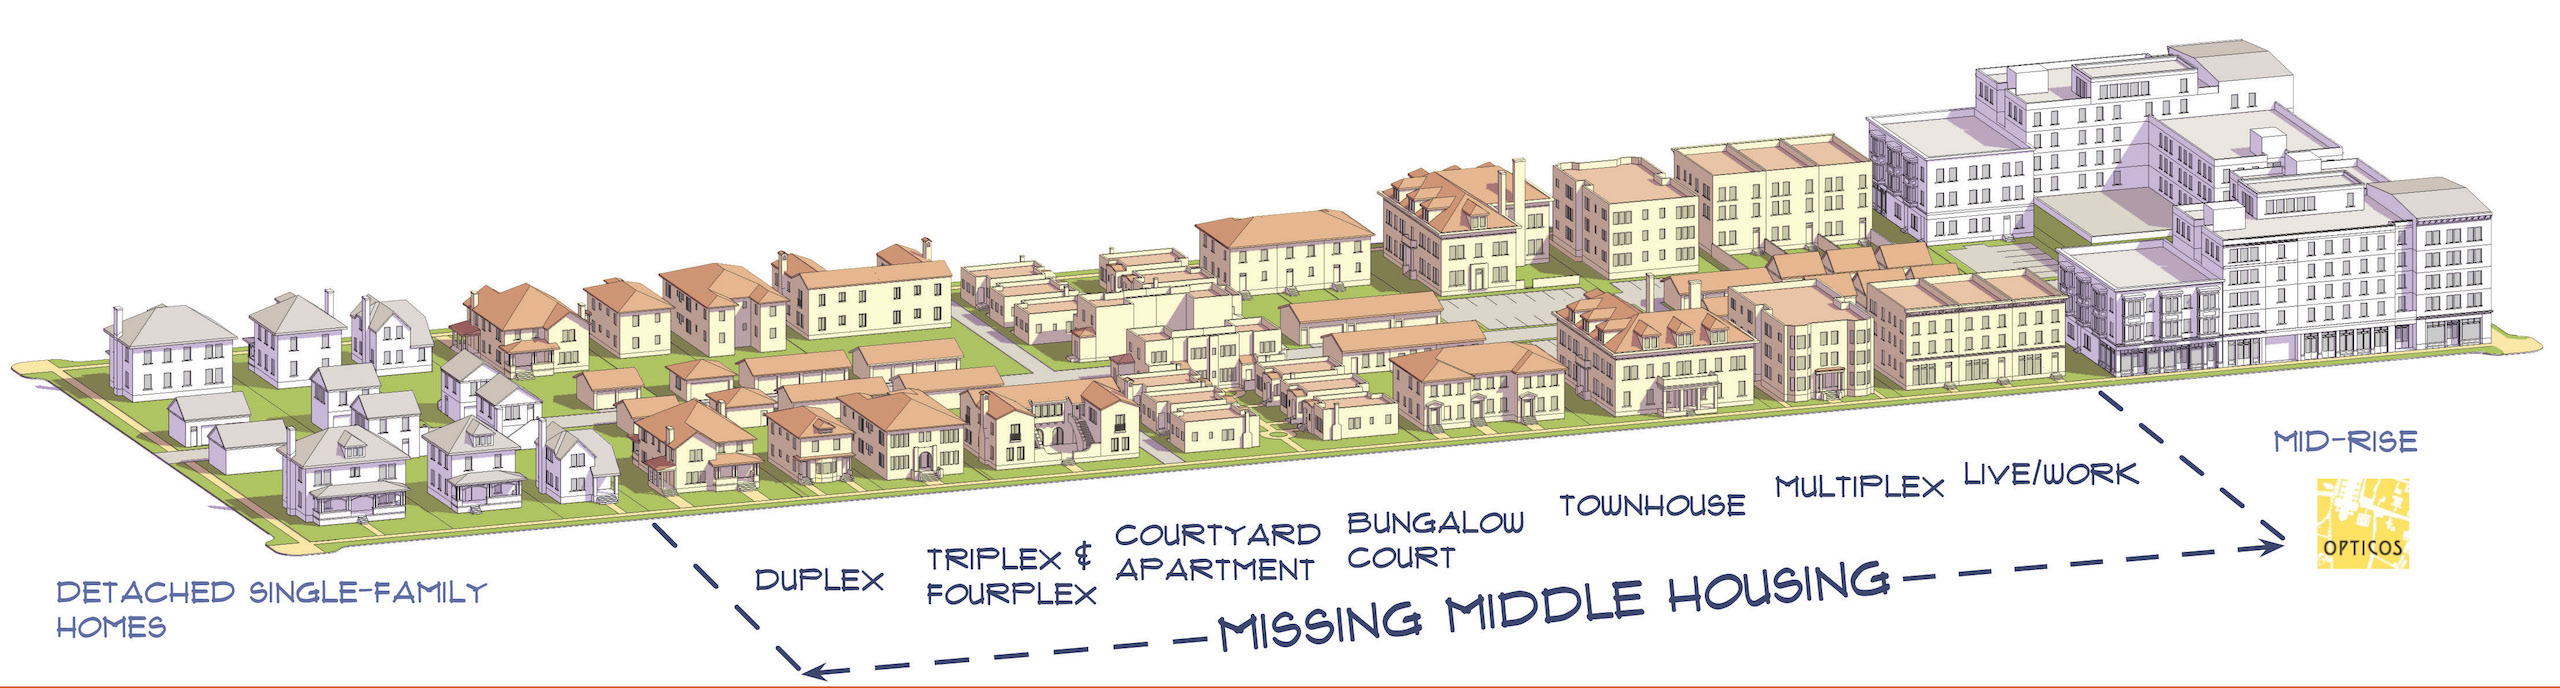 Different housing types are arrayed on a long city block, from detached single-family houses at one end to mid-rise apartments at the other end